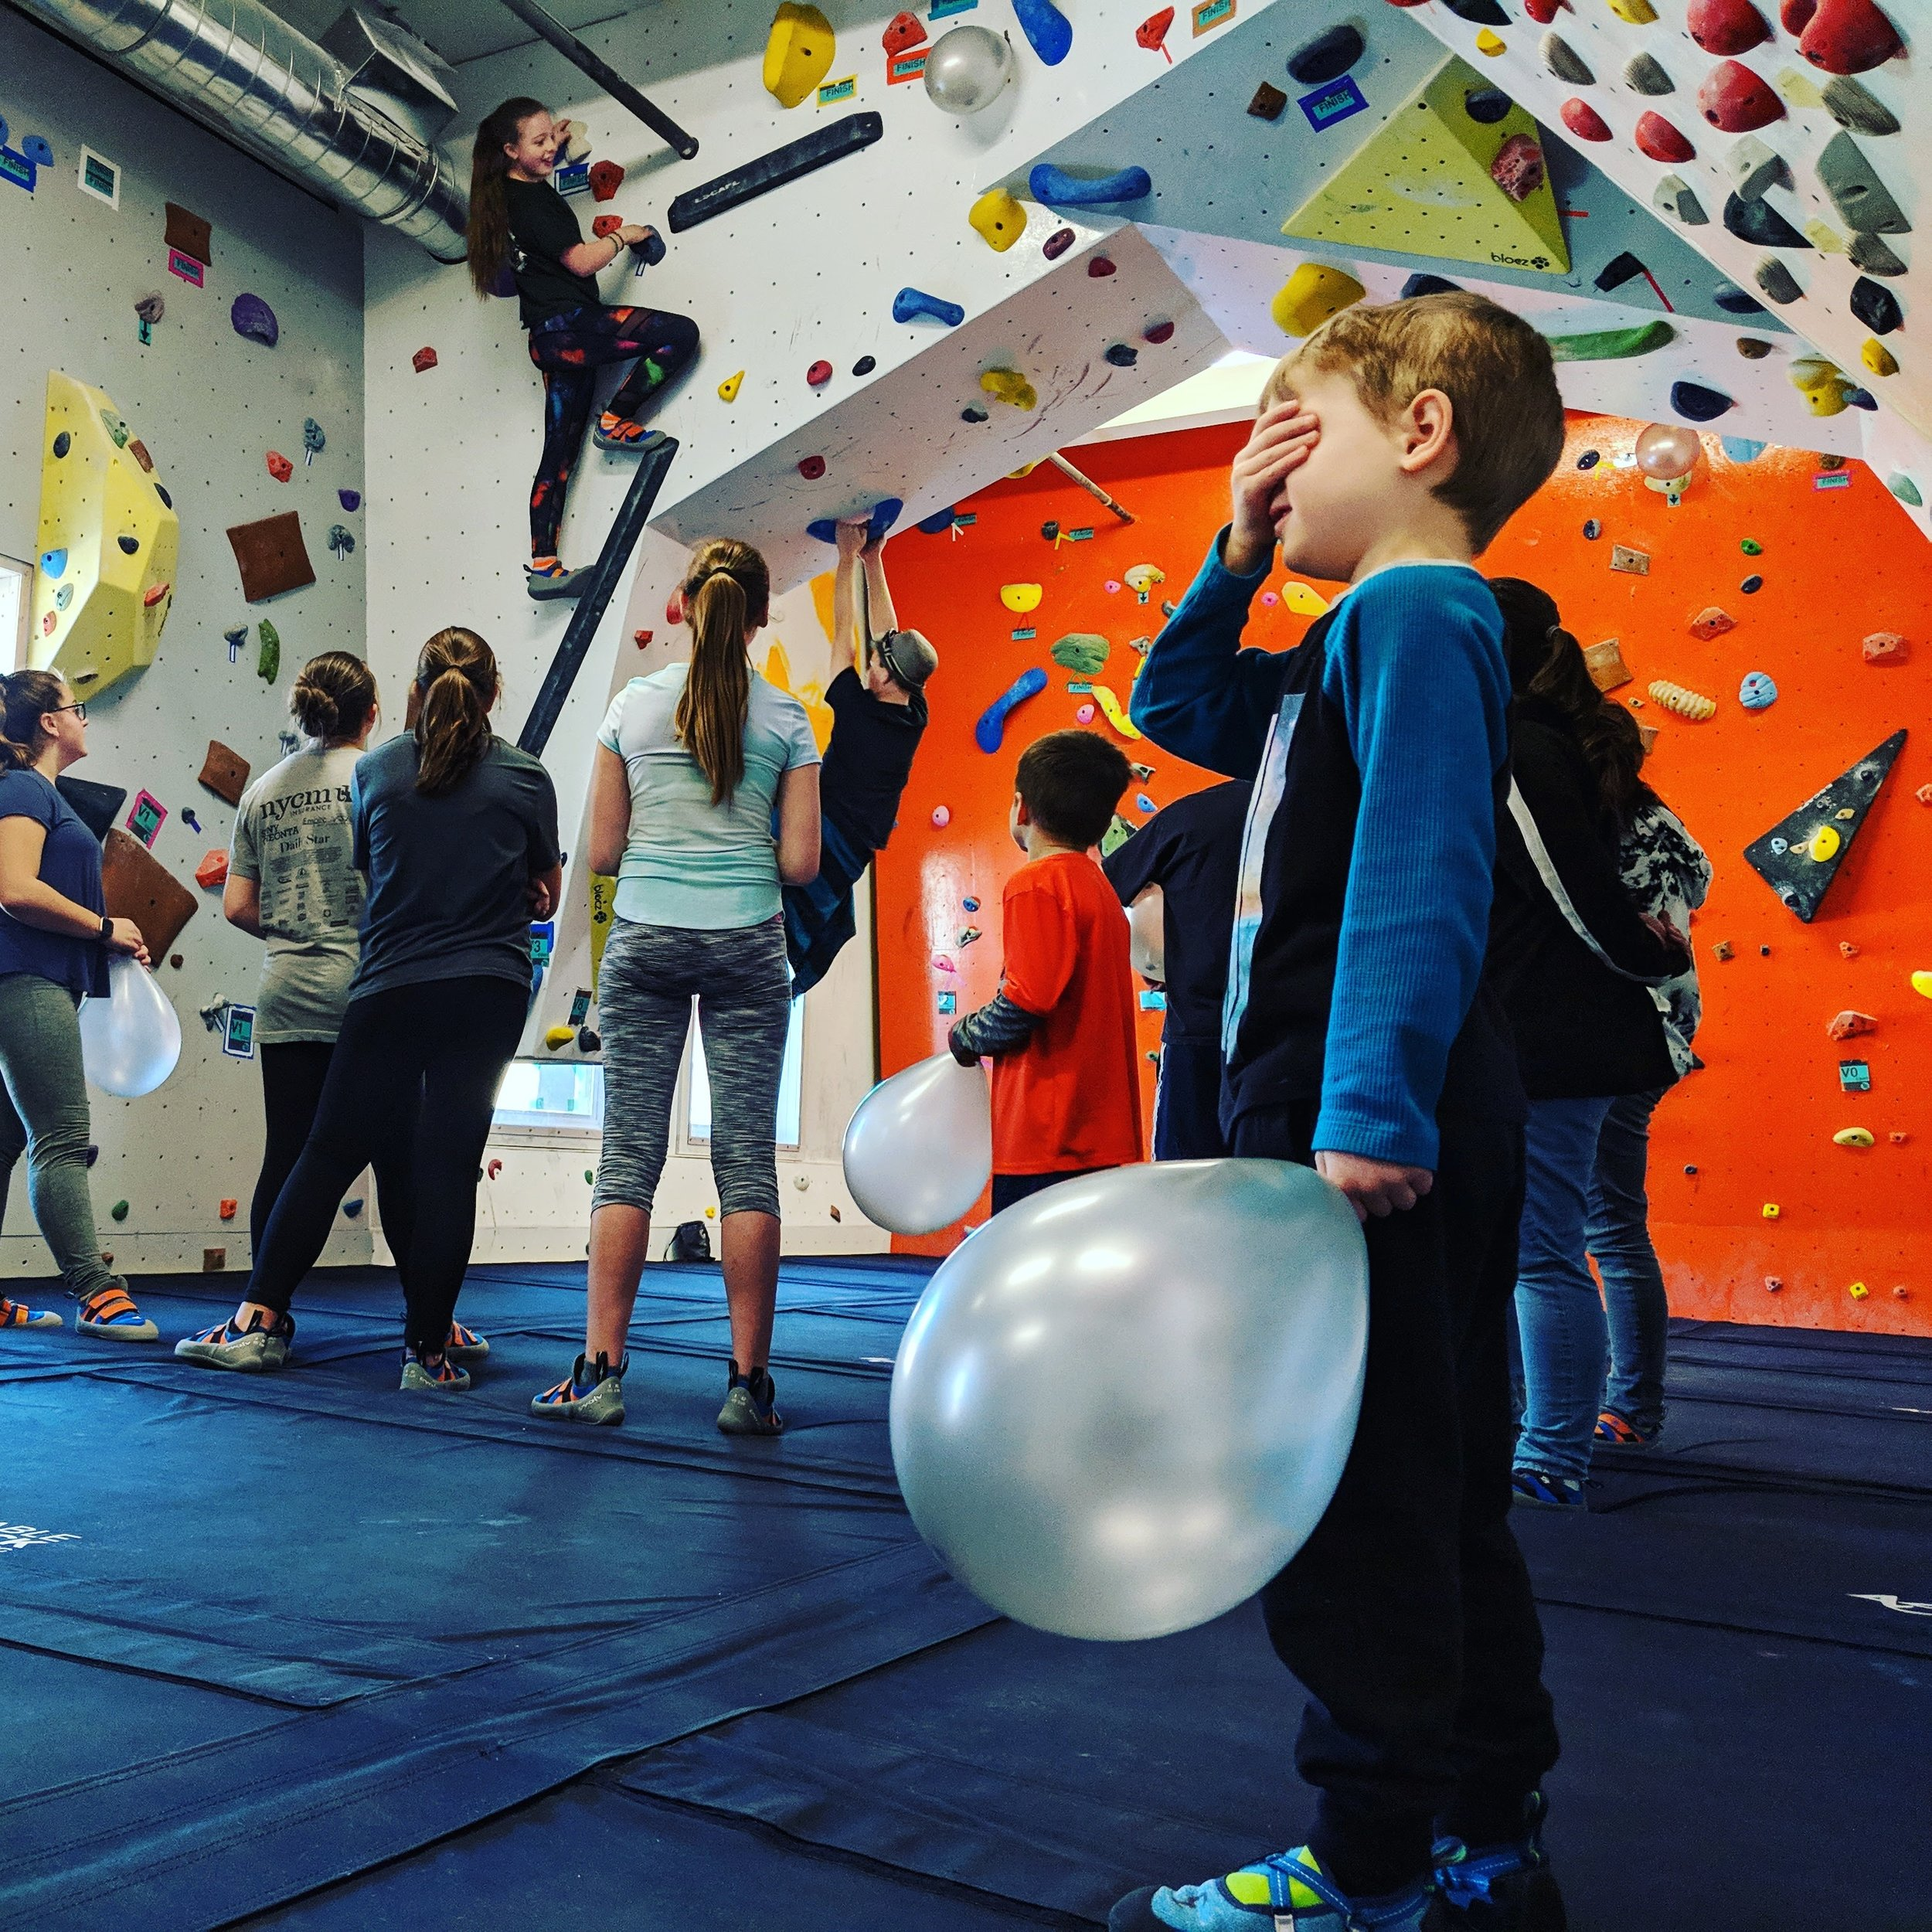 Table Rock Bouldering hosts birthday parties! - Saturdays and Sundays the gym will be available for birthday parties from 11 AM to 1 PM. Parties are packed with fun - 2 hours of climbing, cave exploring, games, and activities. A private party room is available for food, presents, and other party favors. A signed waiver from immediate parent or guardian is required for each child.$150 - For the first 10 children and $5 /each additional children (up to 20). 2 hours of climbing and activities. Children must be accompanied in 5/1 parent ratio. Shoe rentals are included and 2 staff members will be present.A $100 non-refundable deposit is required to reserve.